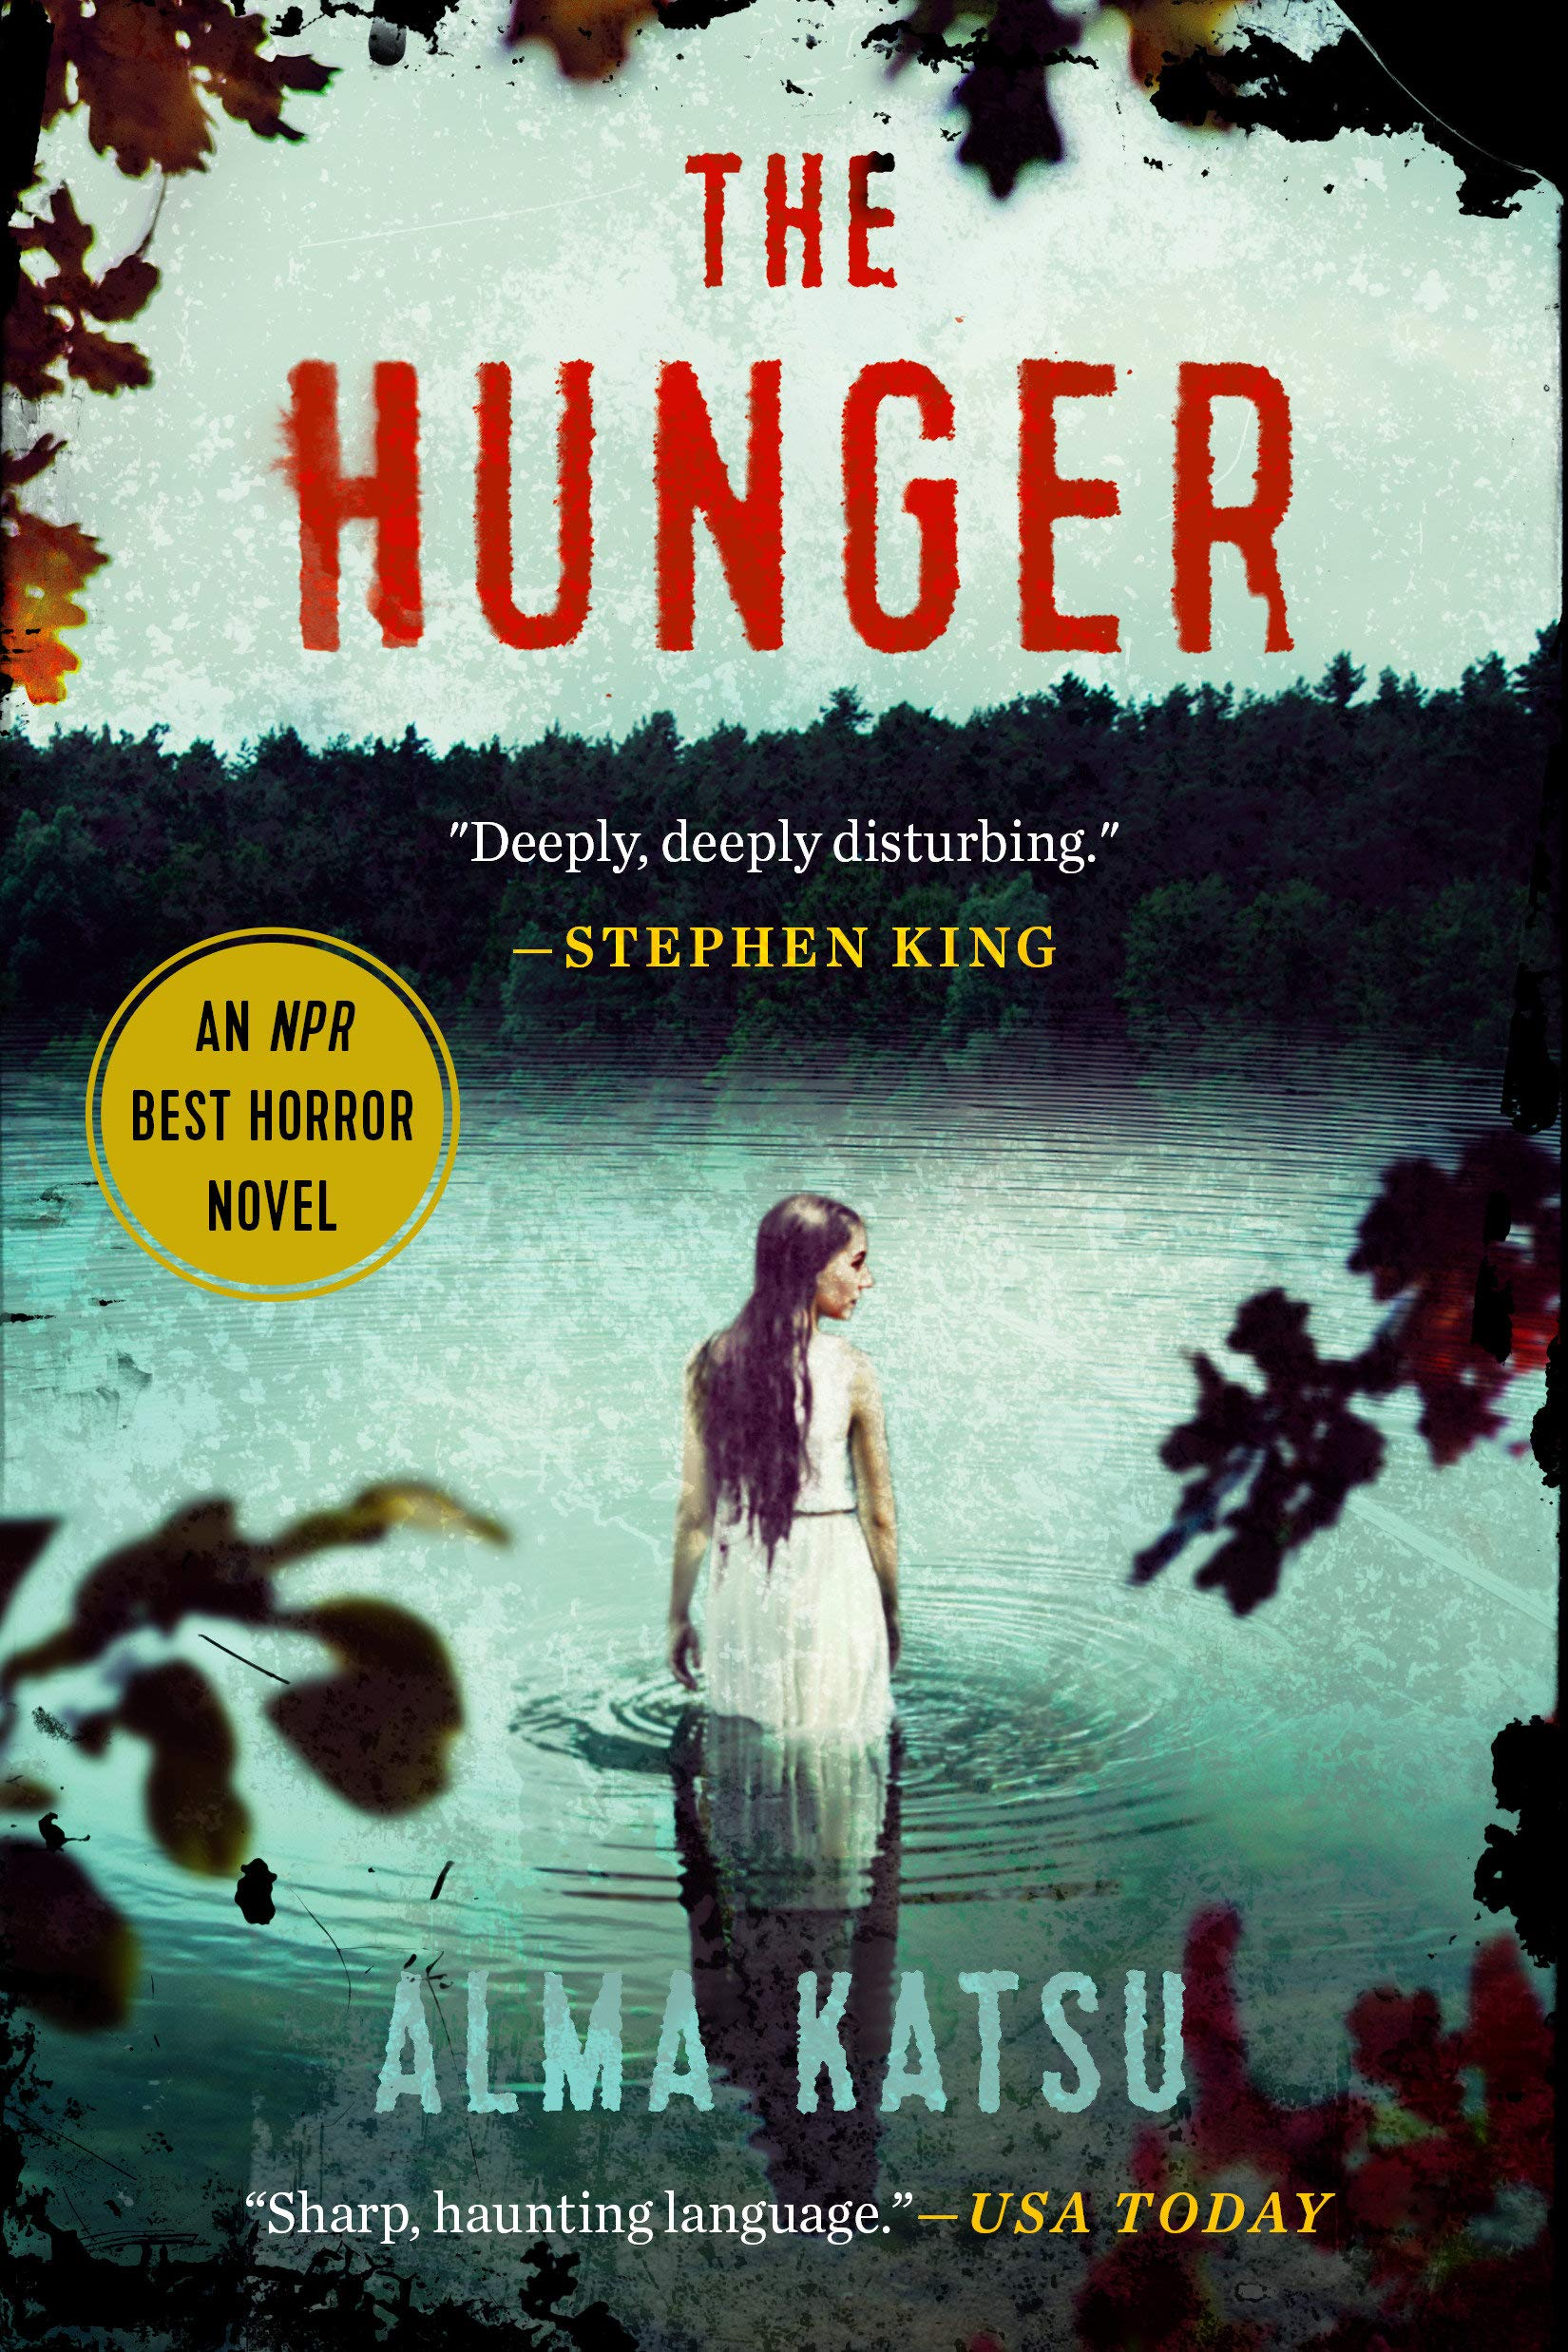 The Hunger book cover